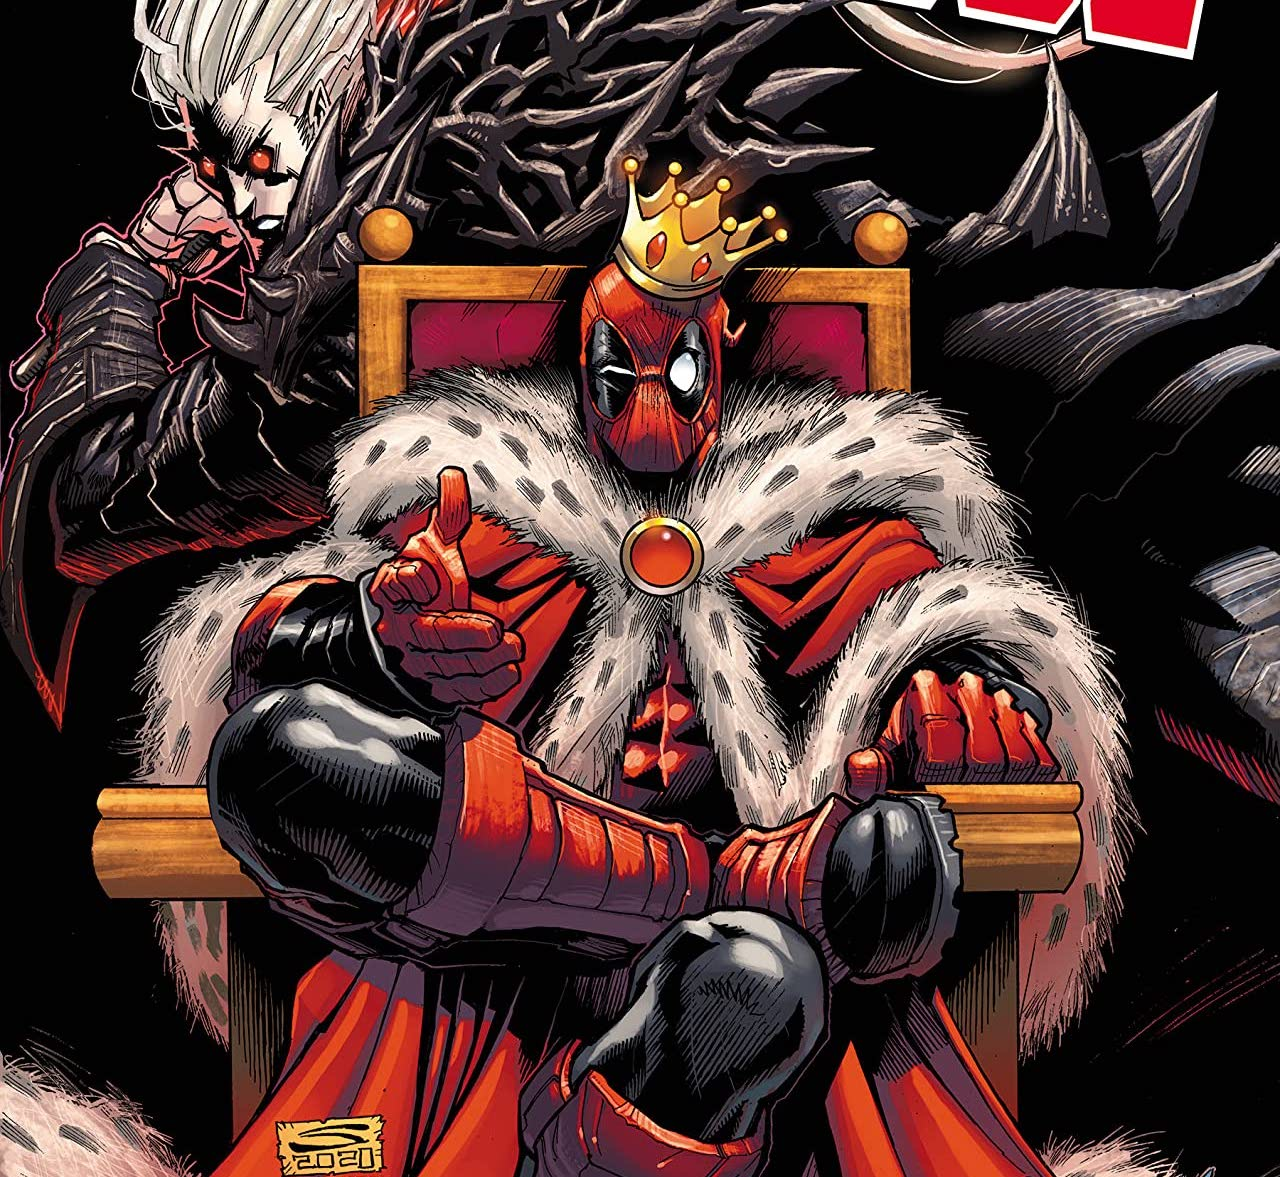 'King Deadpool Vol. 2' is an entertaining respite from your everyday life